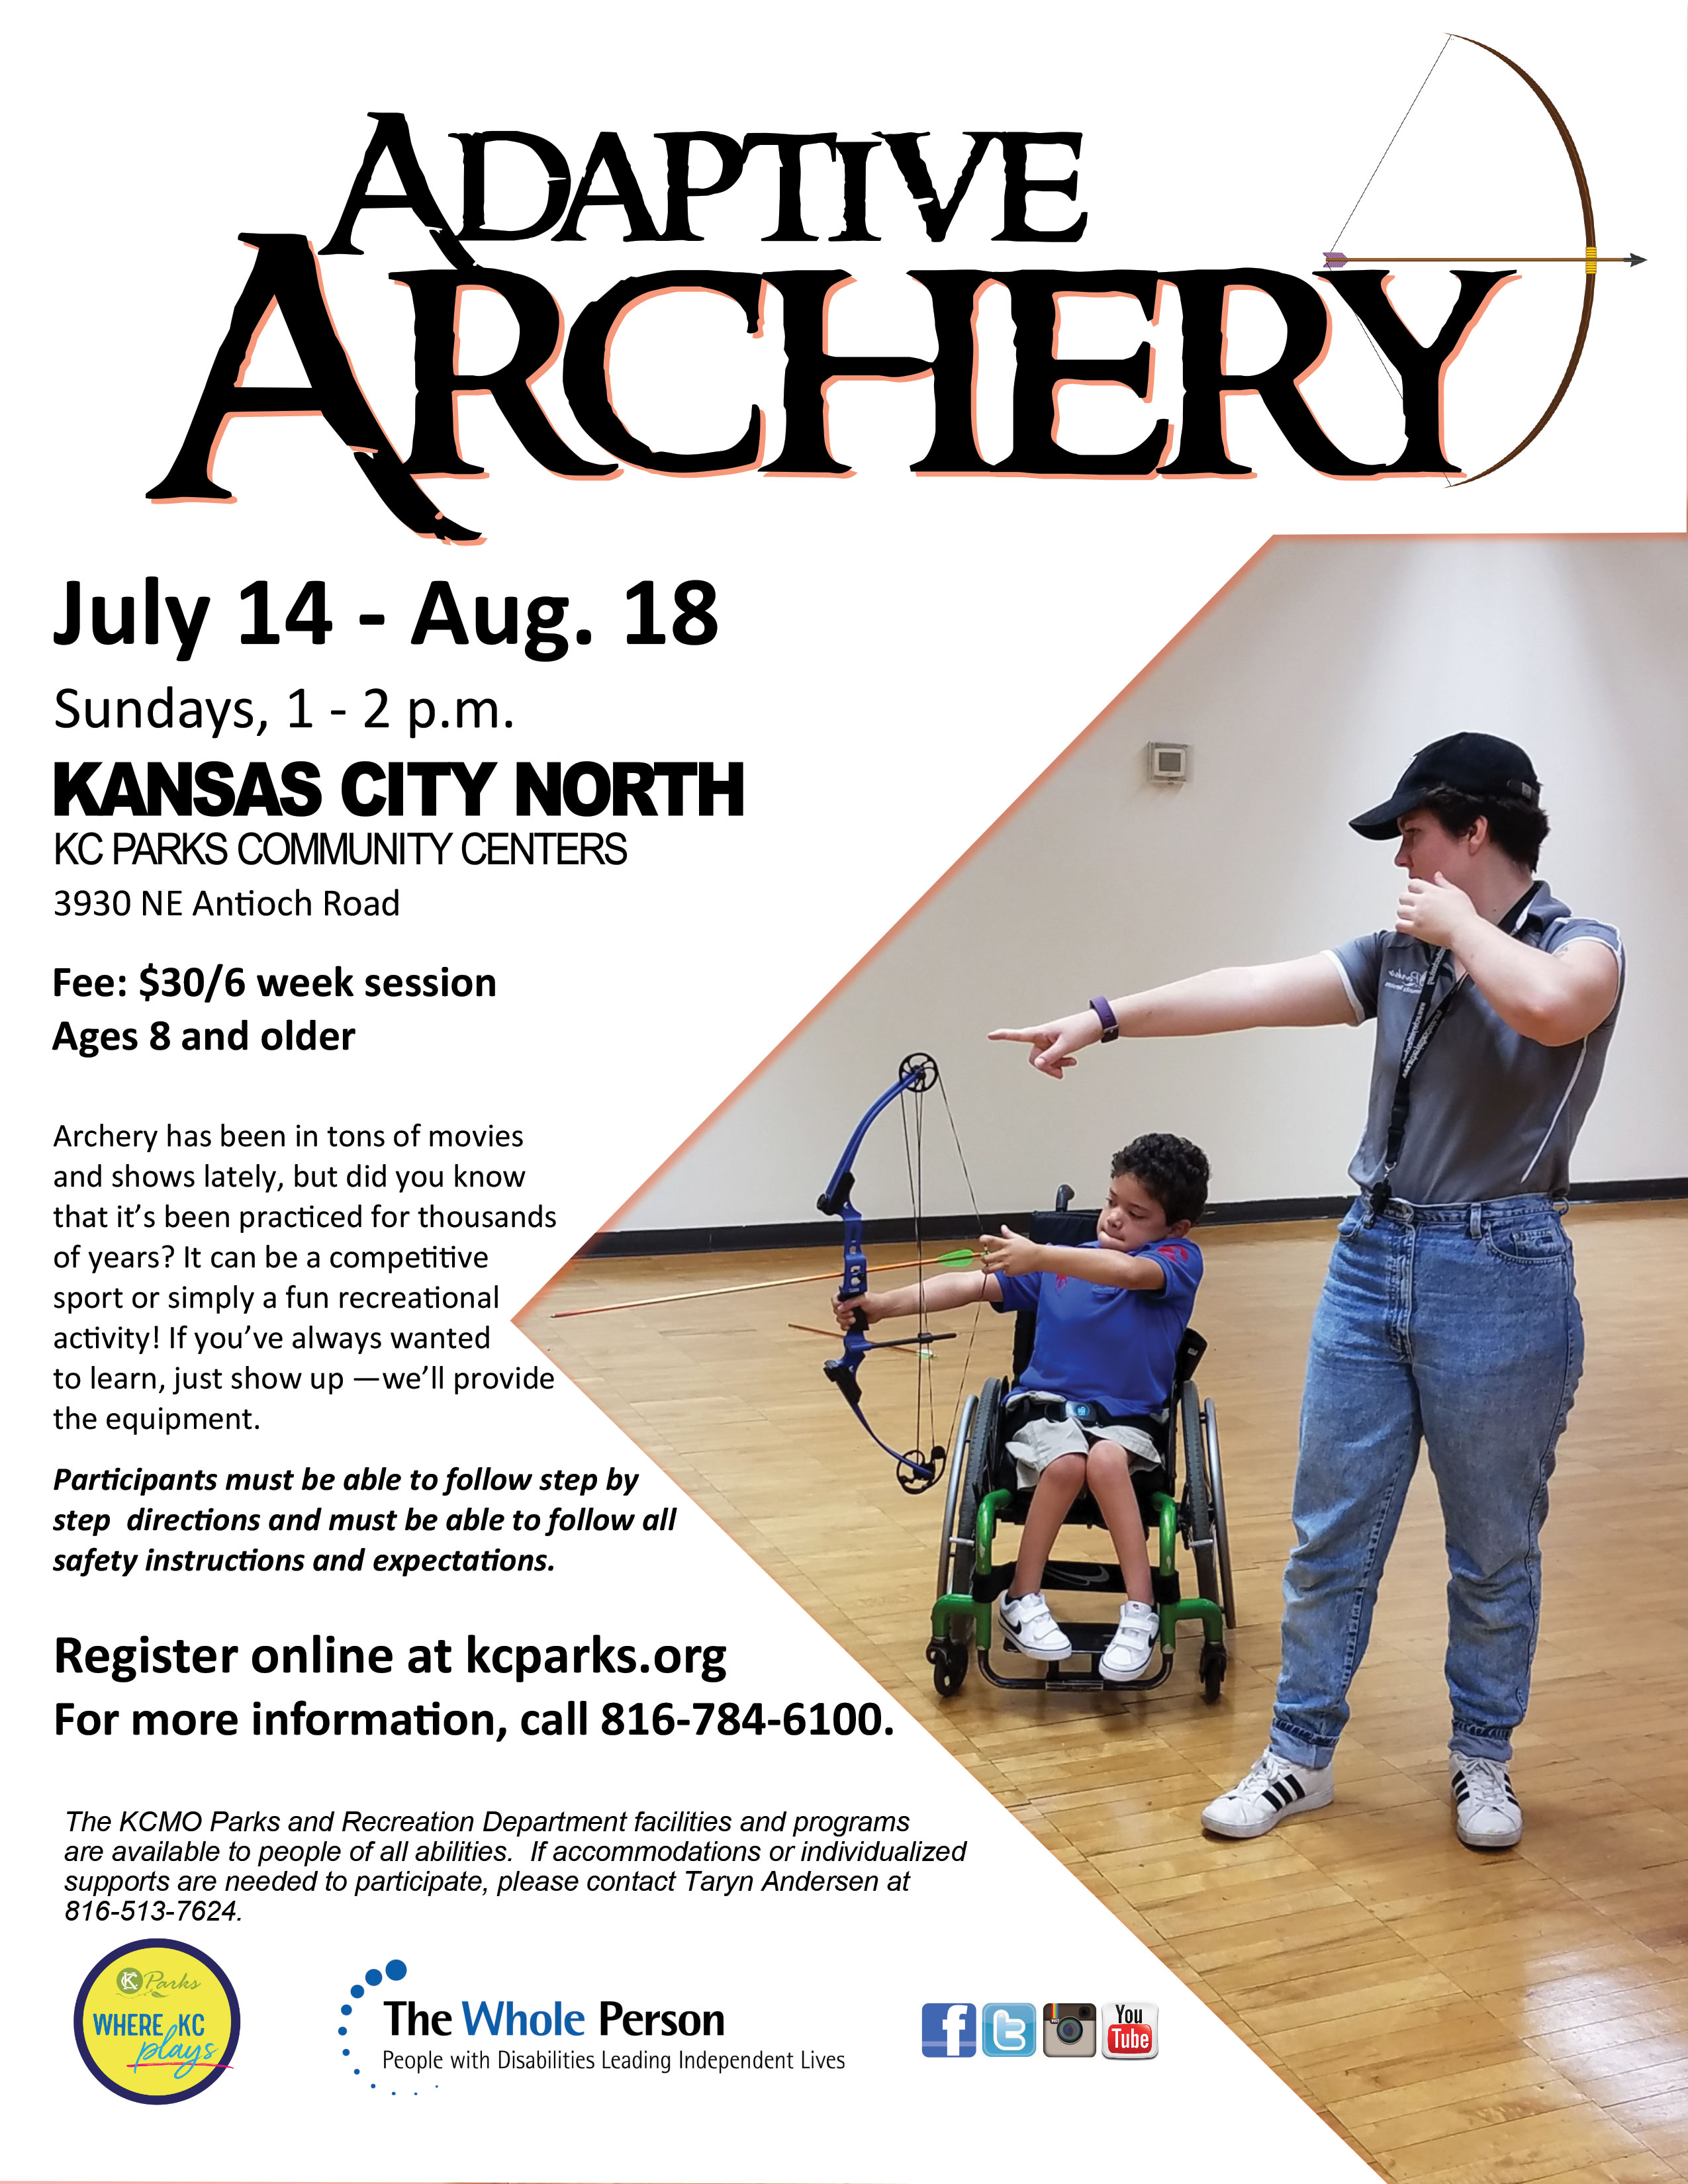 Image of flyer advertising Adaptive Archery workshop